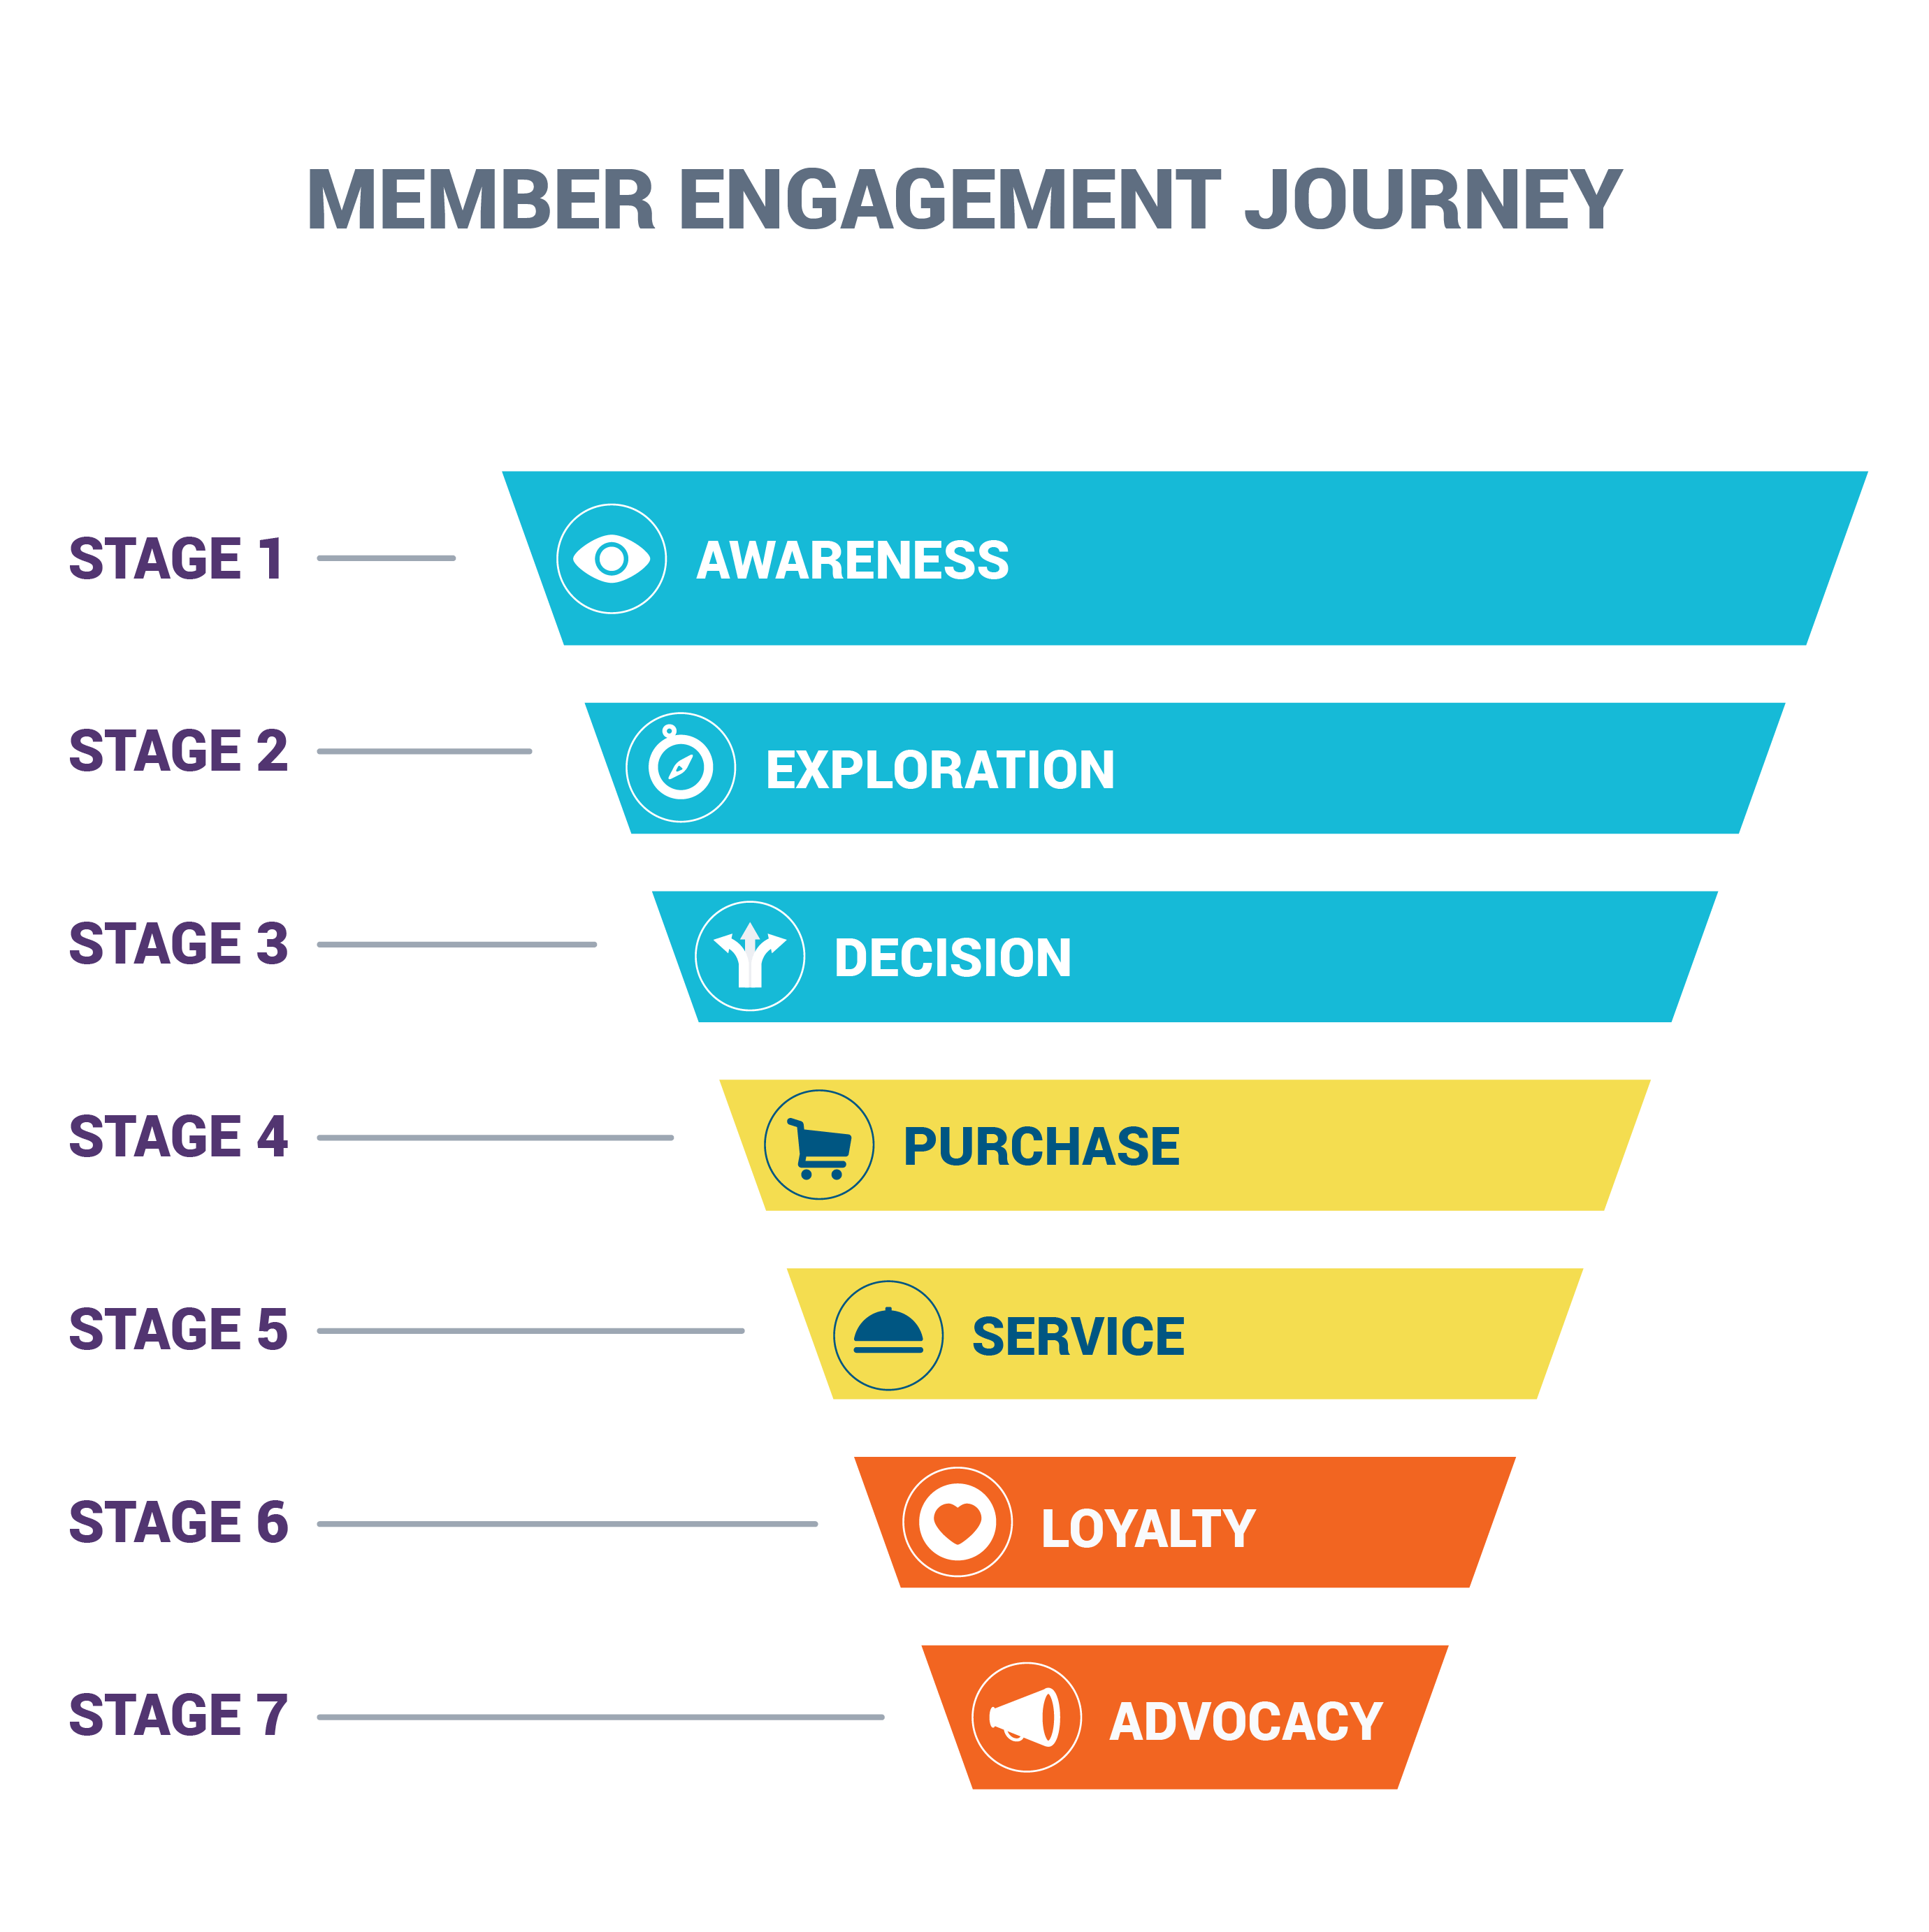 Member Engagement Journey